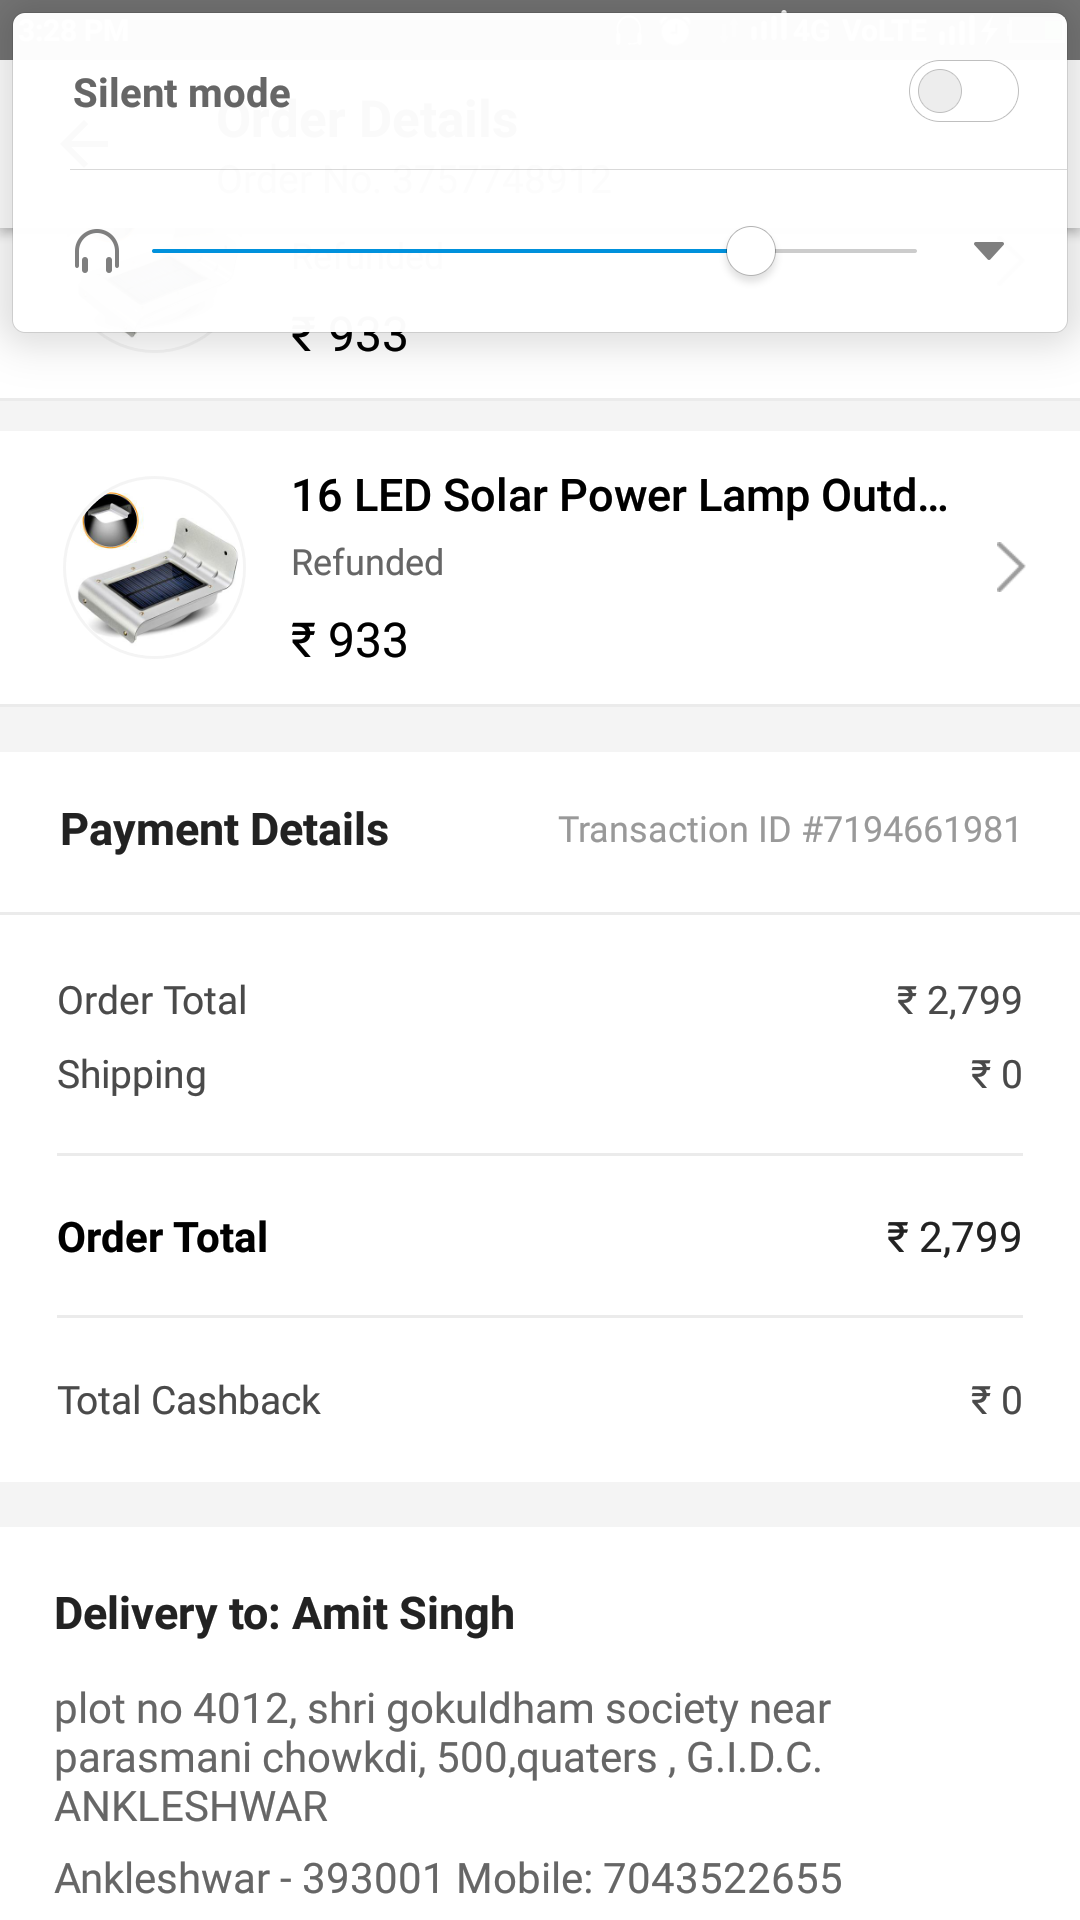 About my order of 2700 Indian rupees which I canceled but didnt get my refund its about 7 day no message from paytm after putting issue and quary